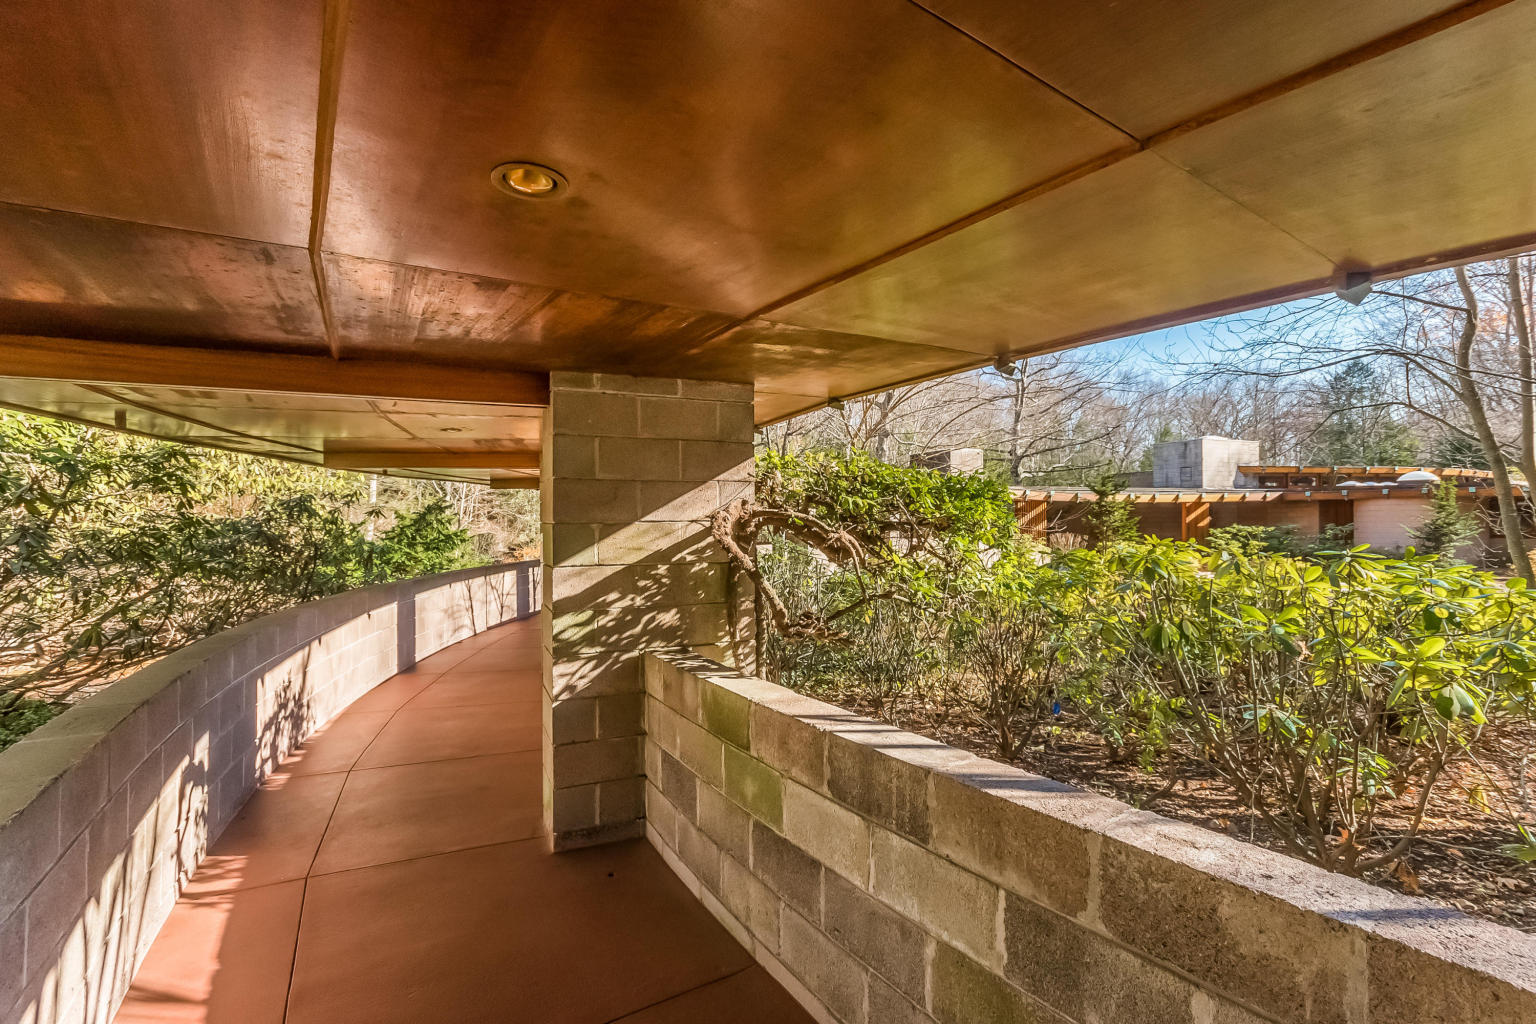 own frank lloyd wright 39 s horseshoe shaped tirranna home in new canaan ct for 8m 6sqft. Black Bedroom Furniture Sets. Home Design Ideas